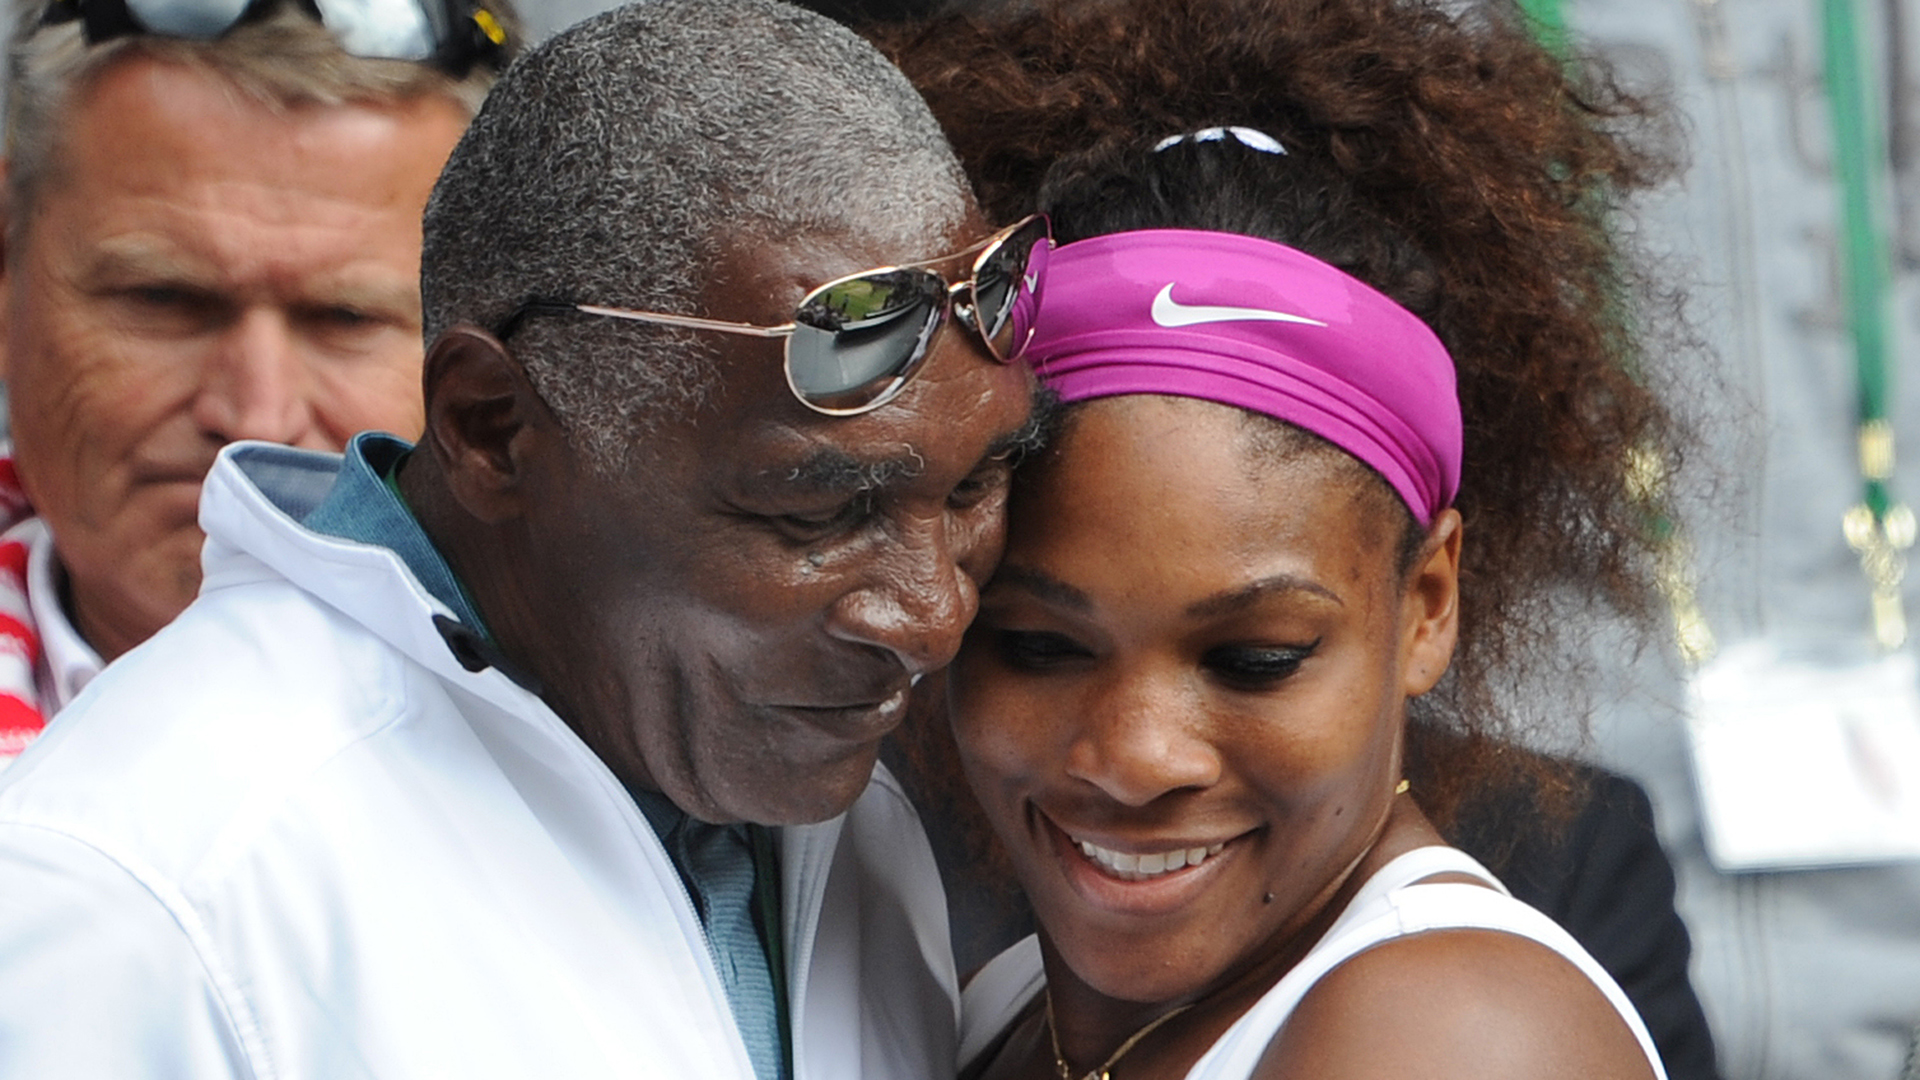 Serena Williams On Why Her Dad Didn T Walk Her Down The Aisle At Her Wedding